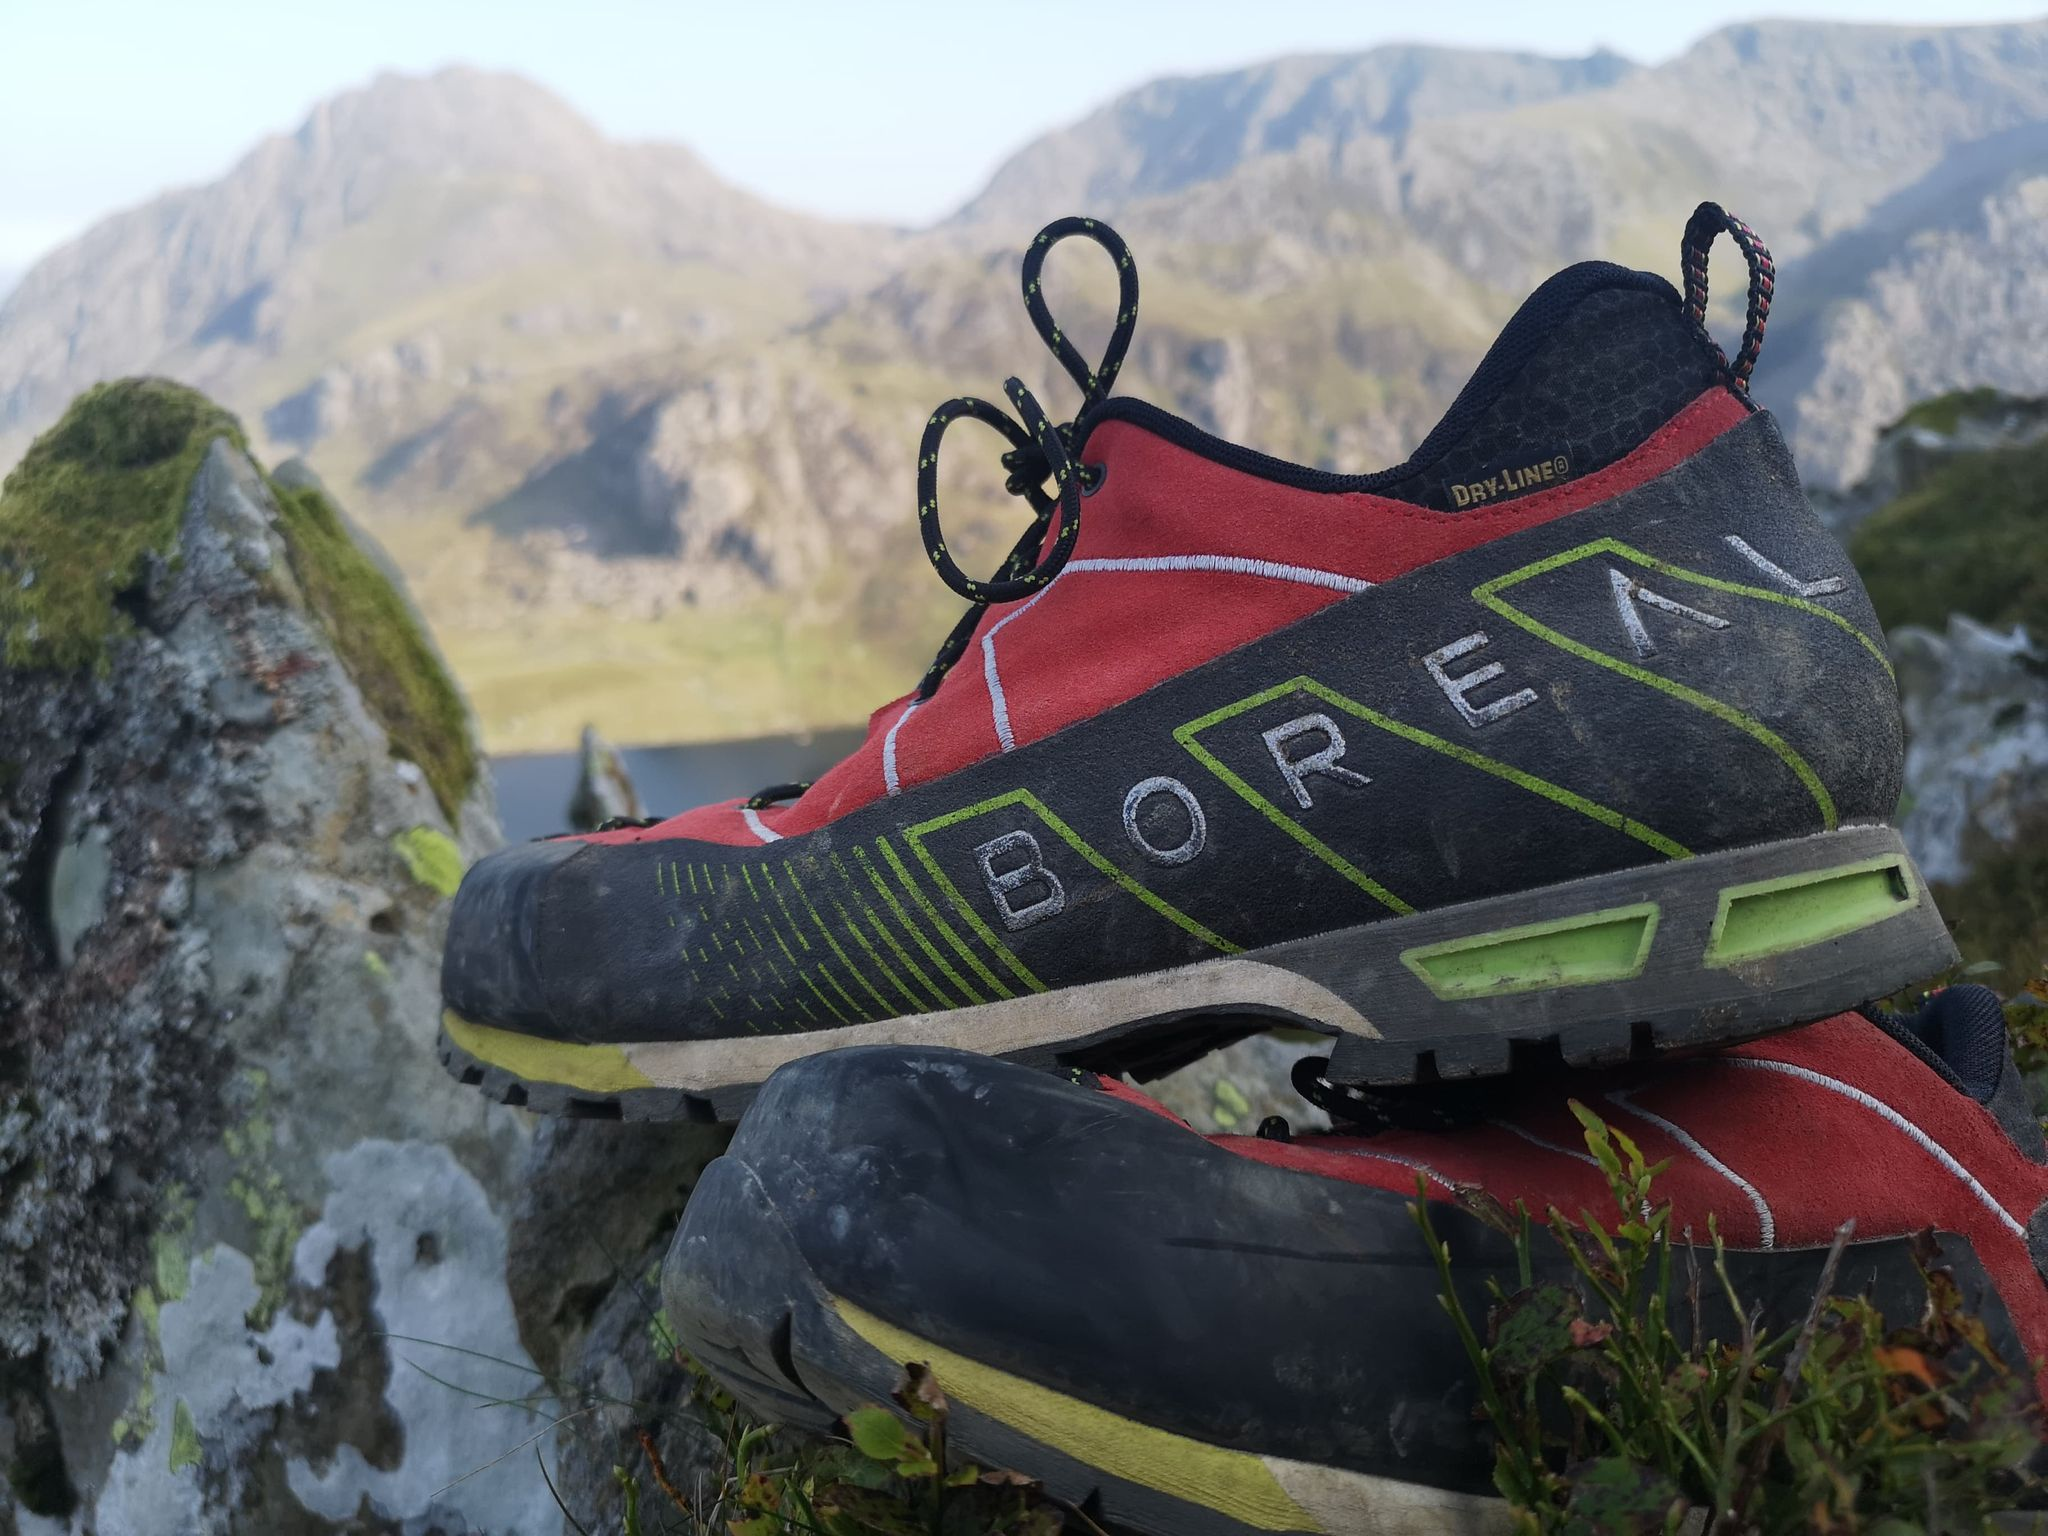 Boreal Drom Approach Shoe